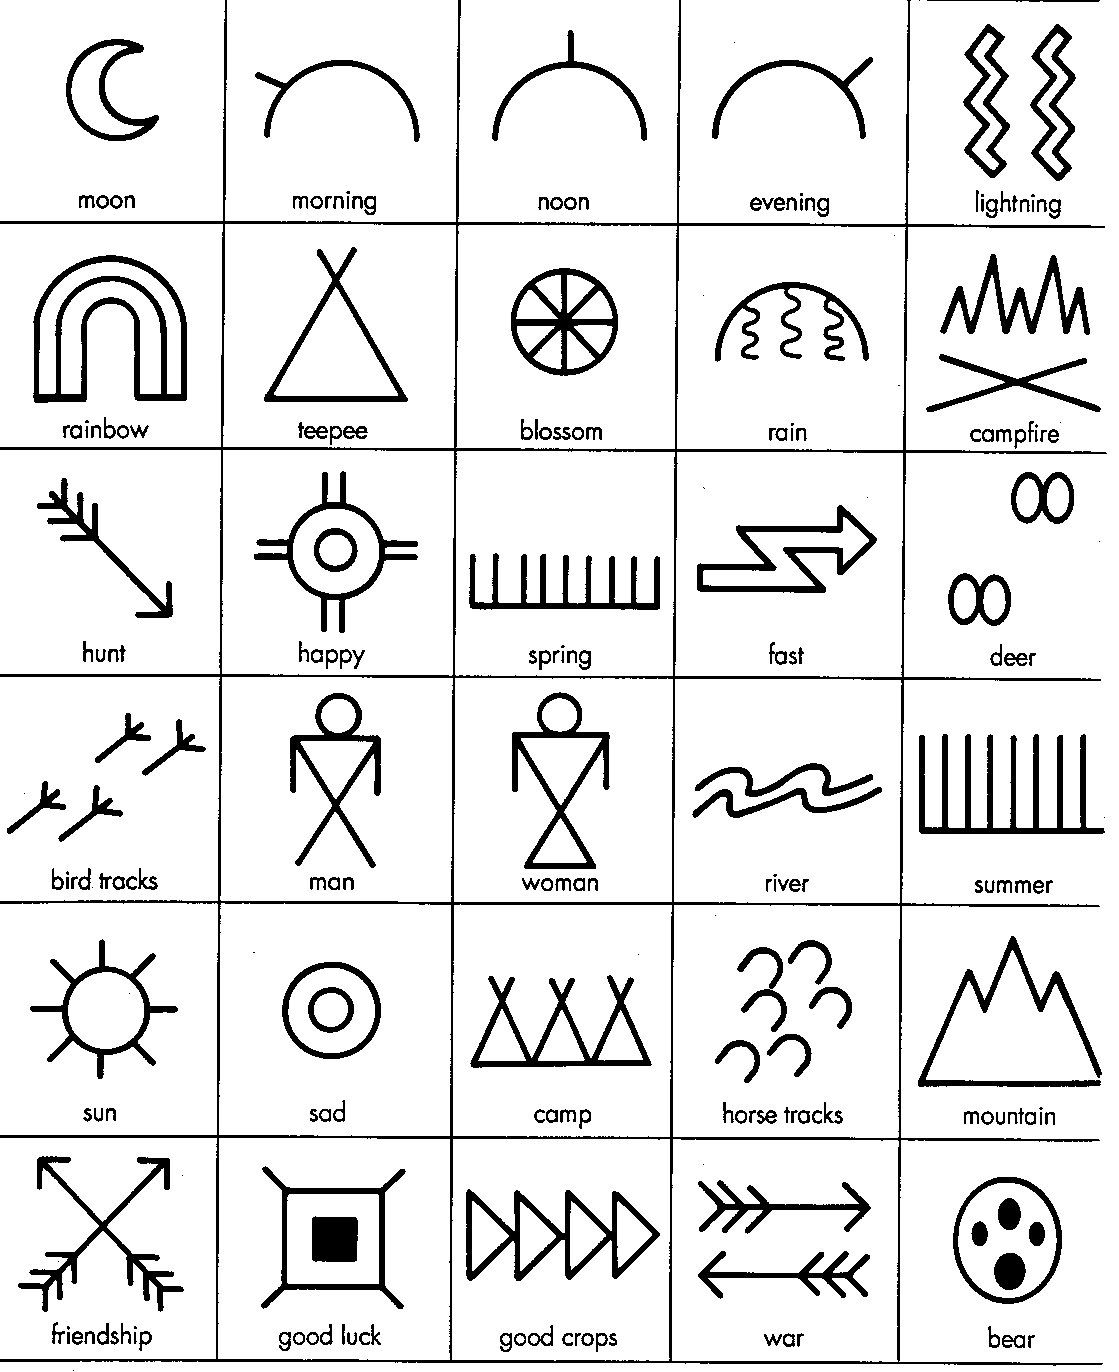 native american indian symbols | L.O.V.E | Pinterest ...